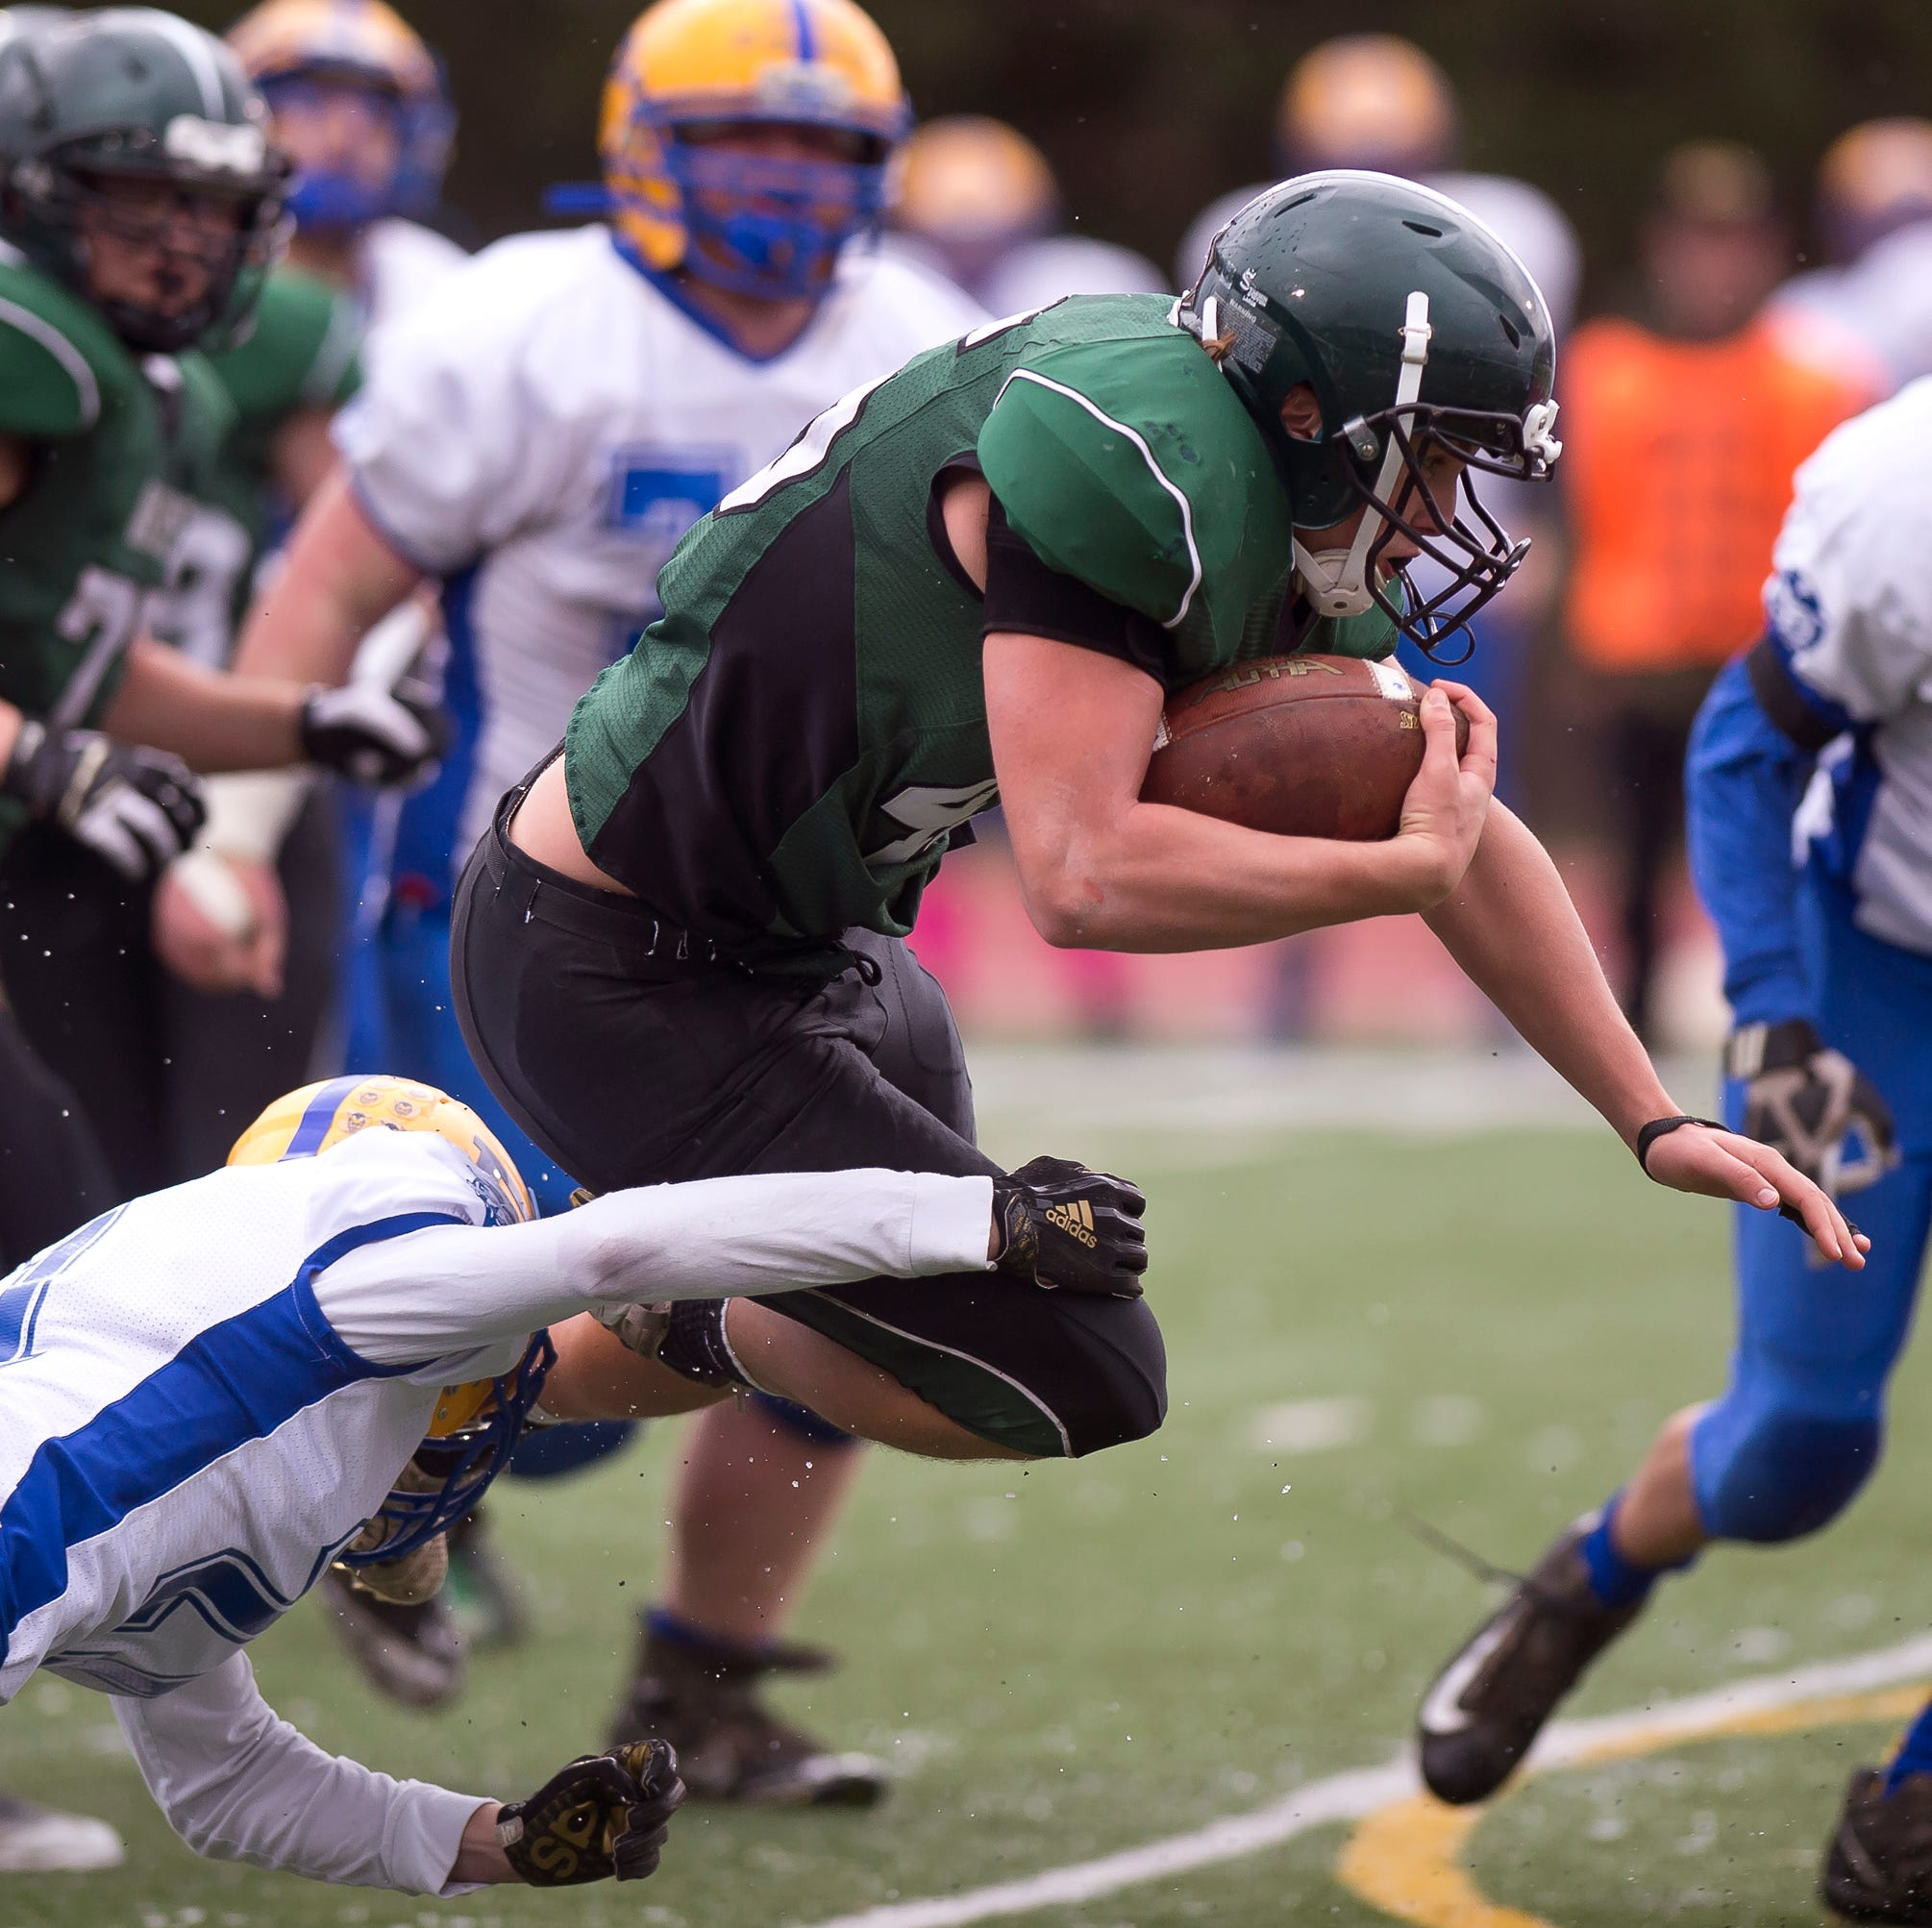 D-III football championship: Woodstock holds off Poultney for crown